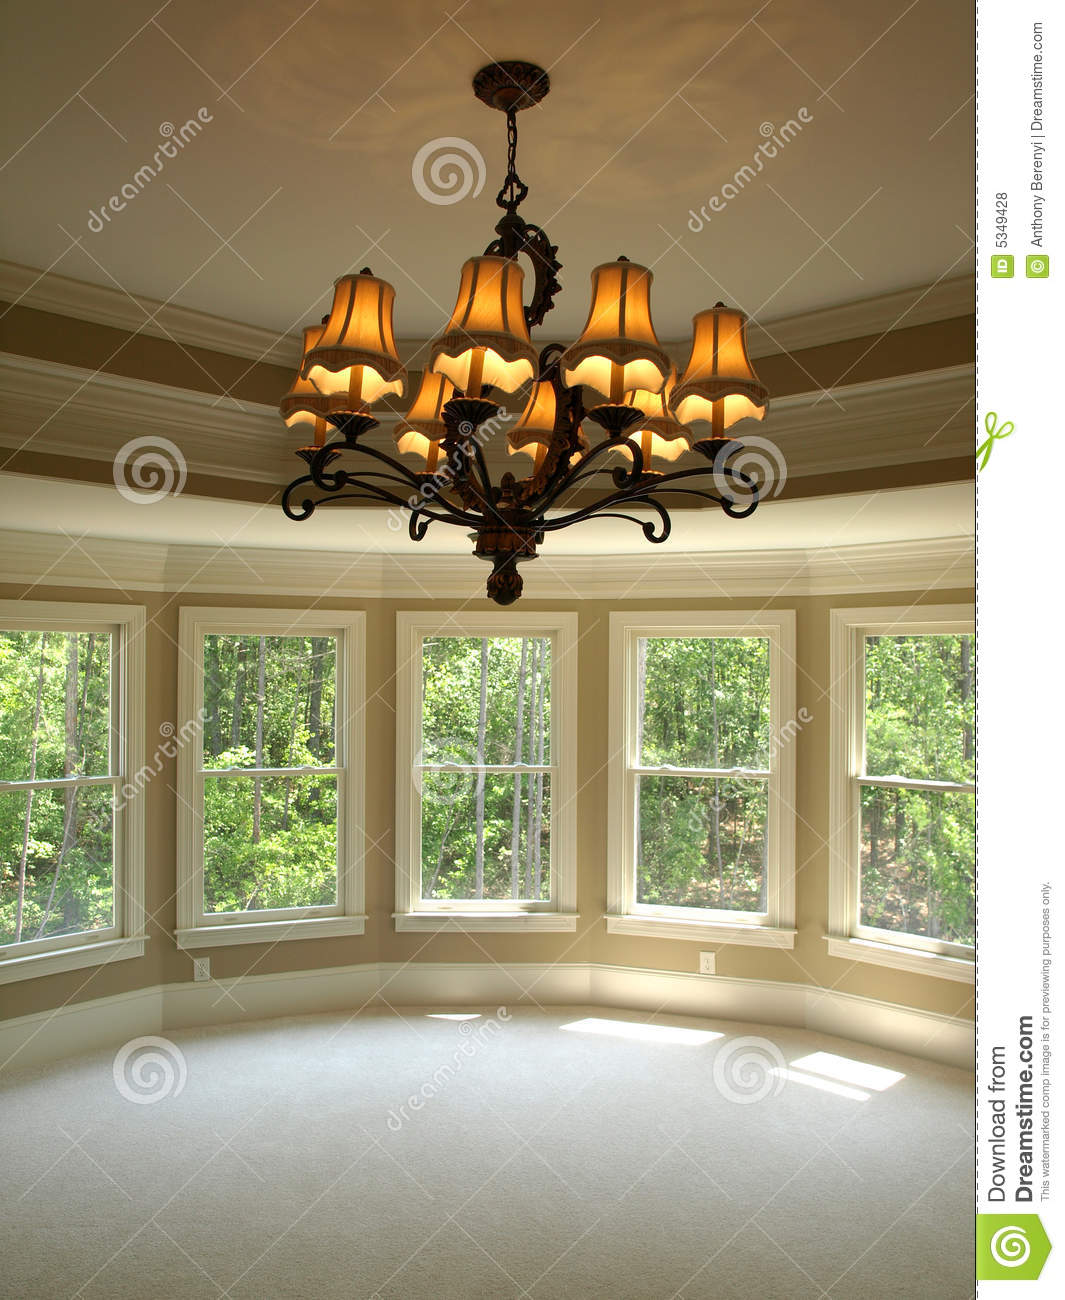 Luxury model home round master bedroom with light stock for Luxury home models